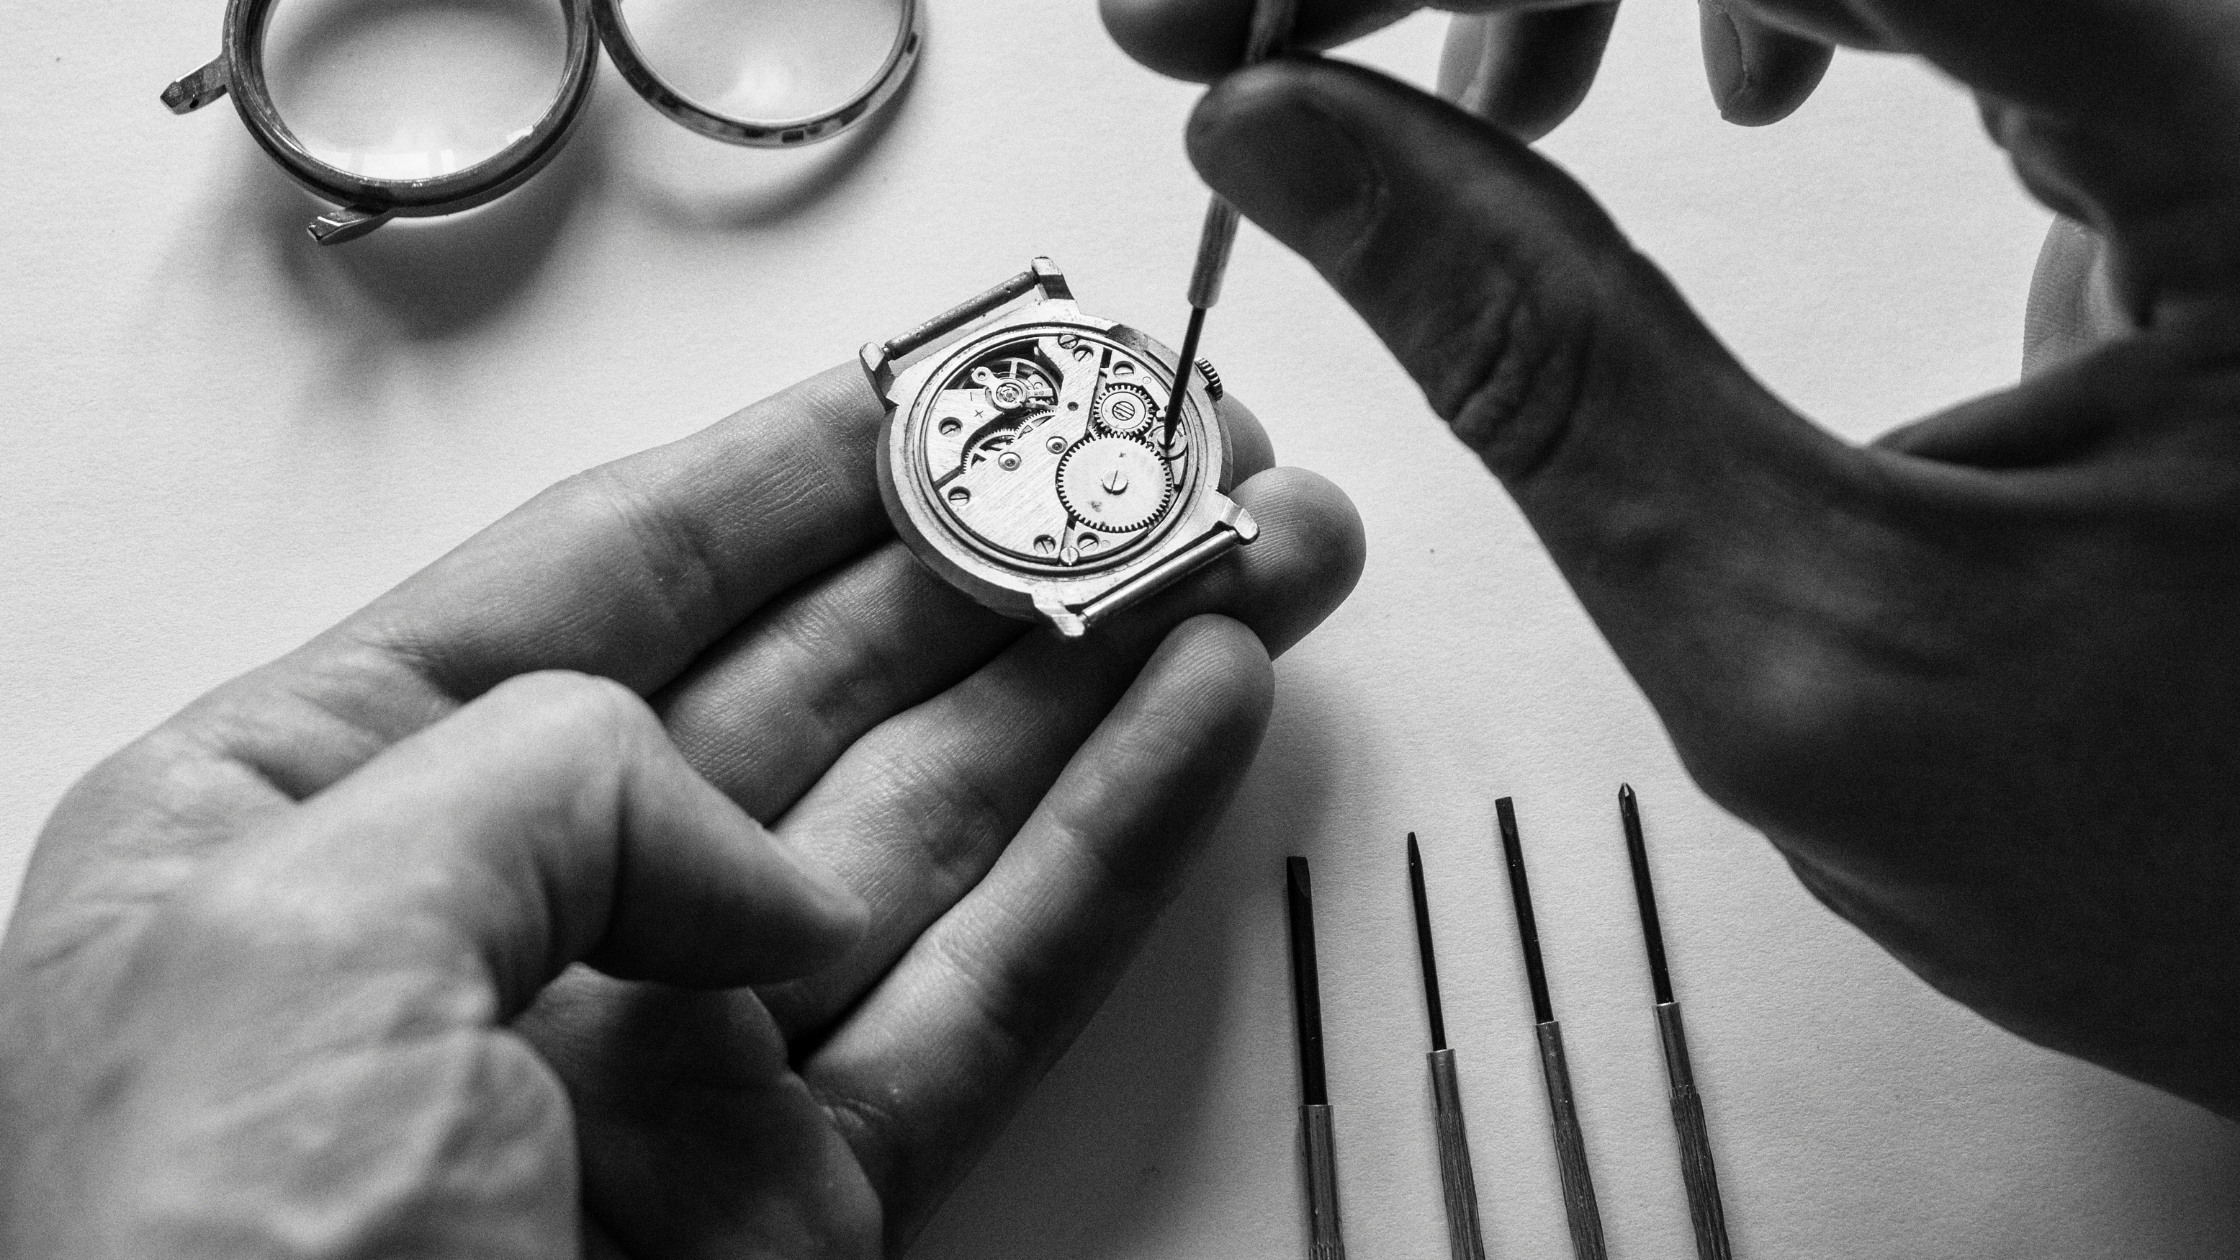 Are Men's Watches More Expensive Than Women's Watches?